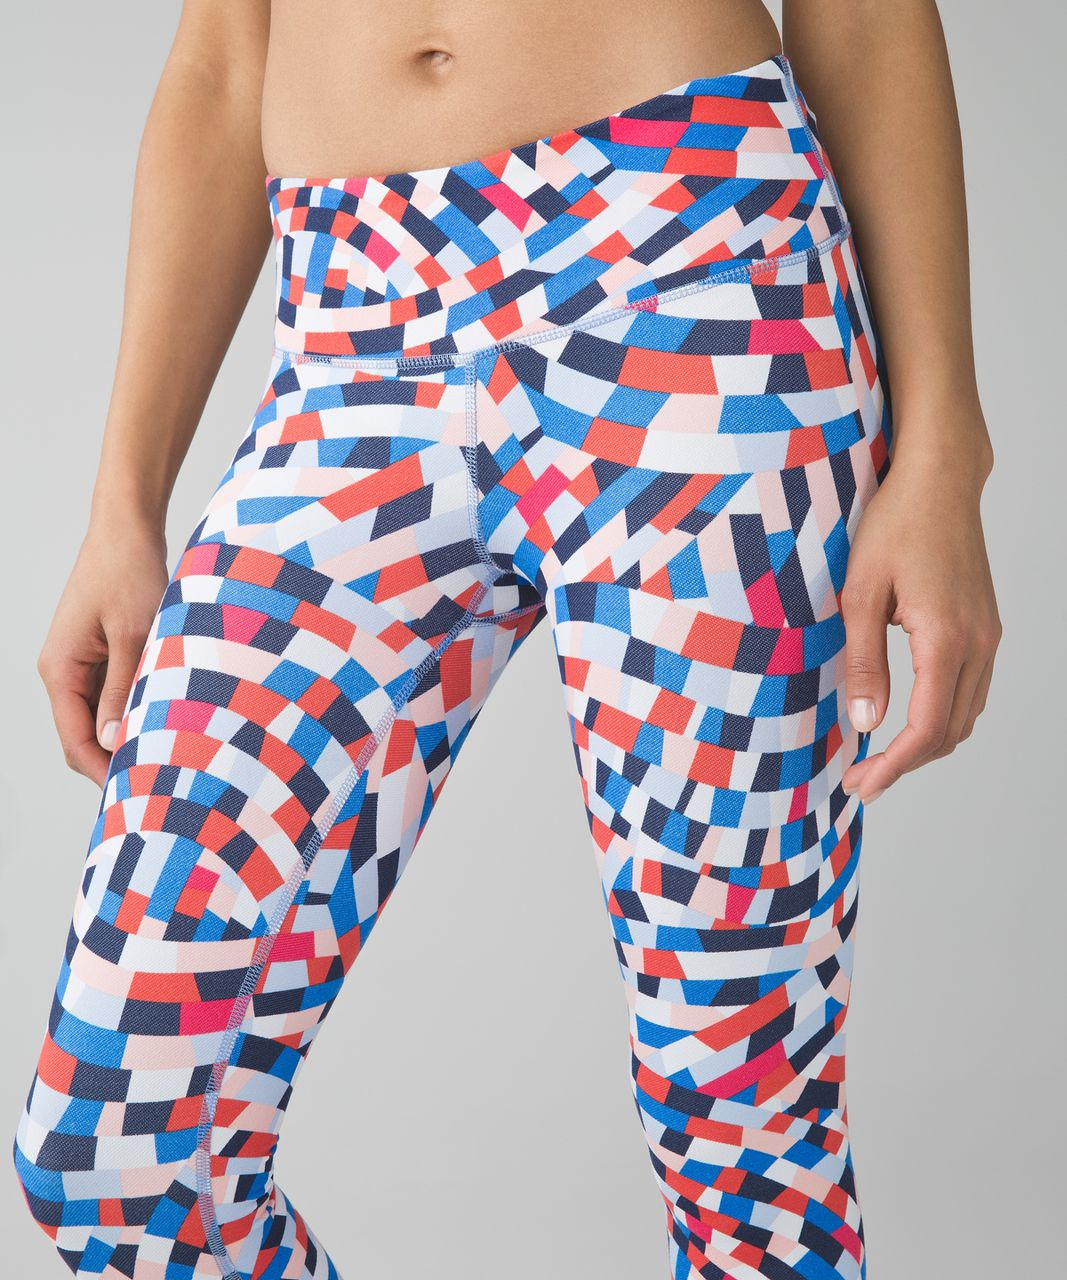 Lululemon Wunder Under Crop III - Capoeira Multi